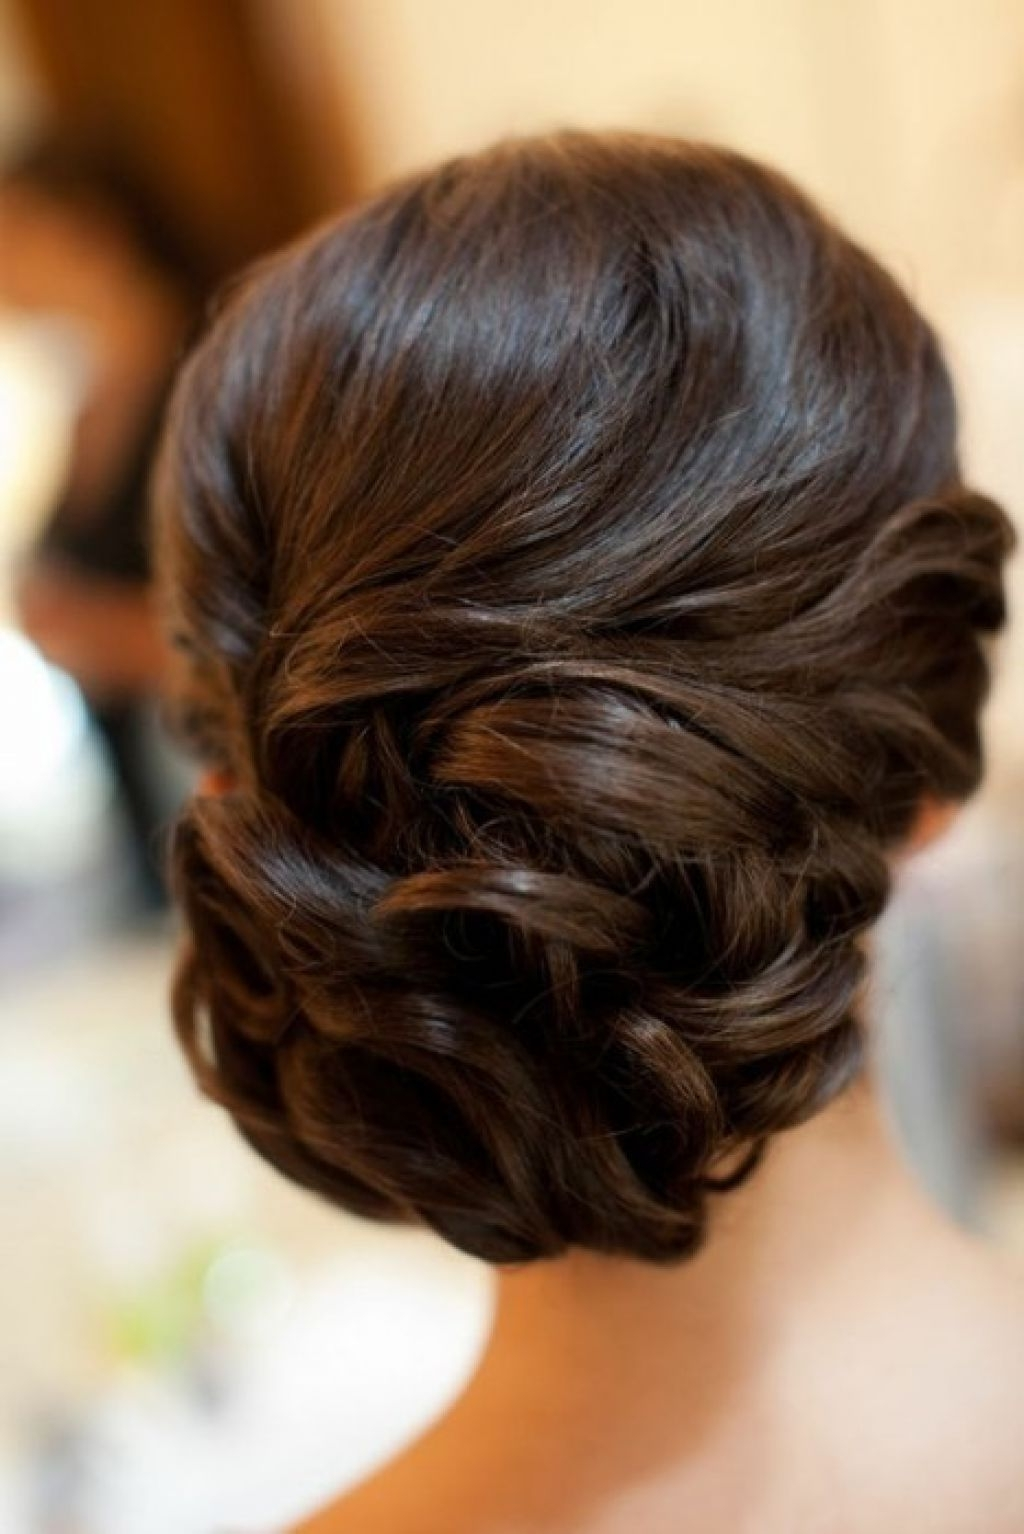 Easy Updo Hairstyles For Medium Hair Hairstyle Fodo Women Impressive Inside Hair Updo Hairstyles For Thick Hair (View 13 of 15)